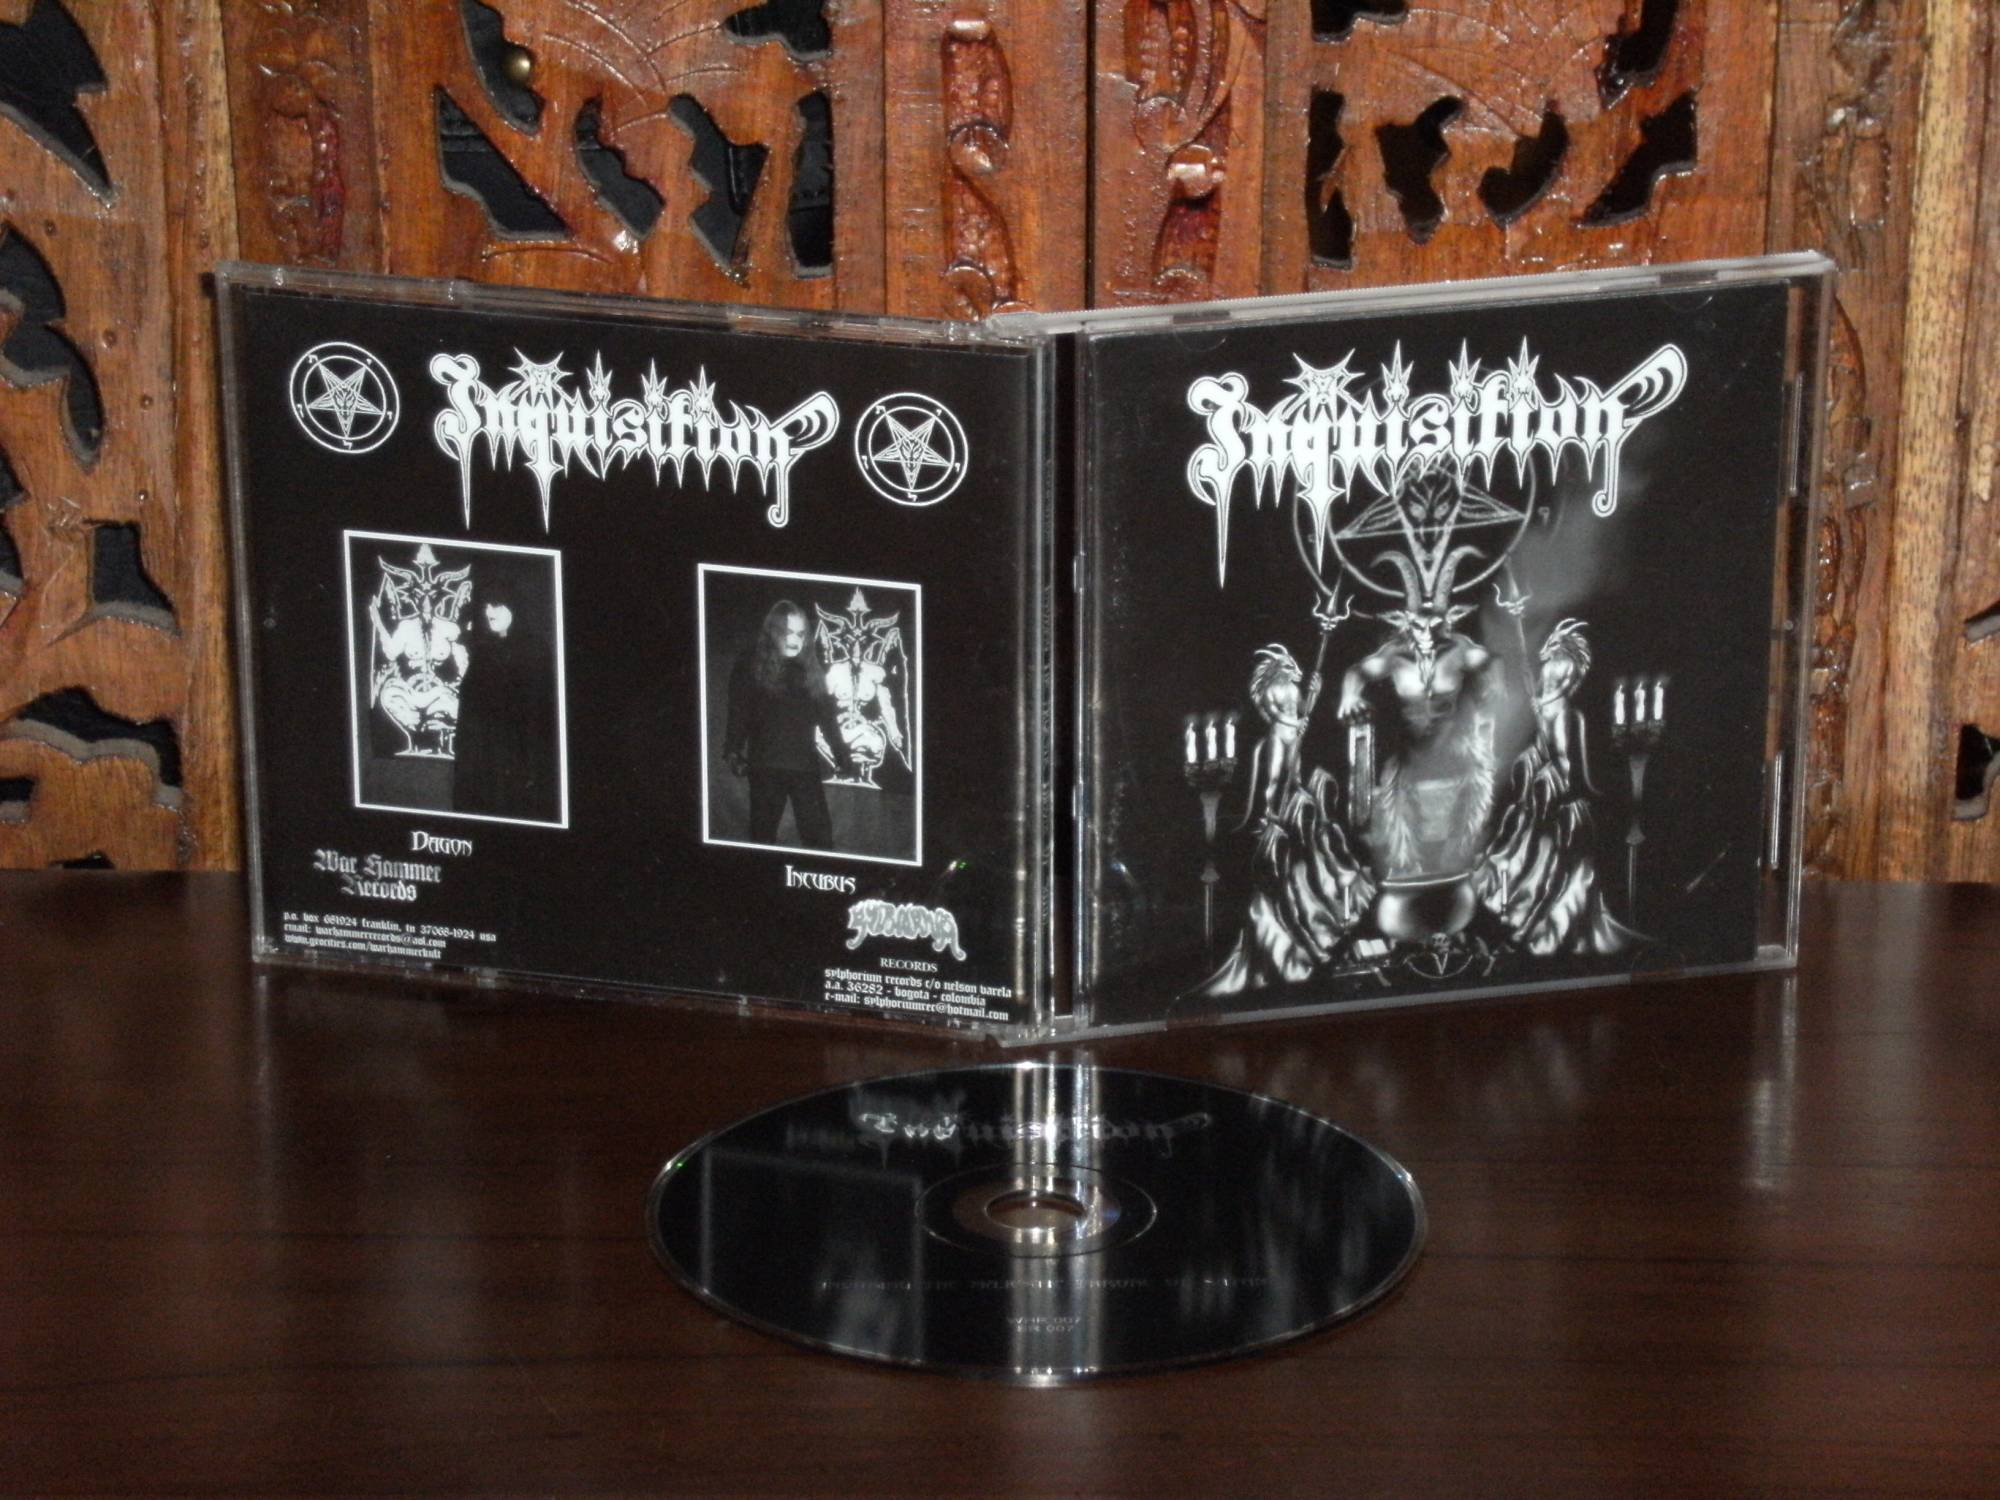 Inquisition Invoking The Majestic Throne Of Satan Inquisition  Invoking The